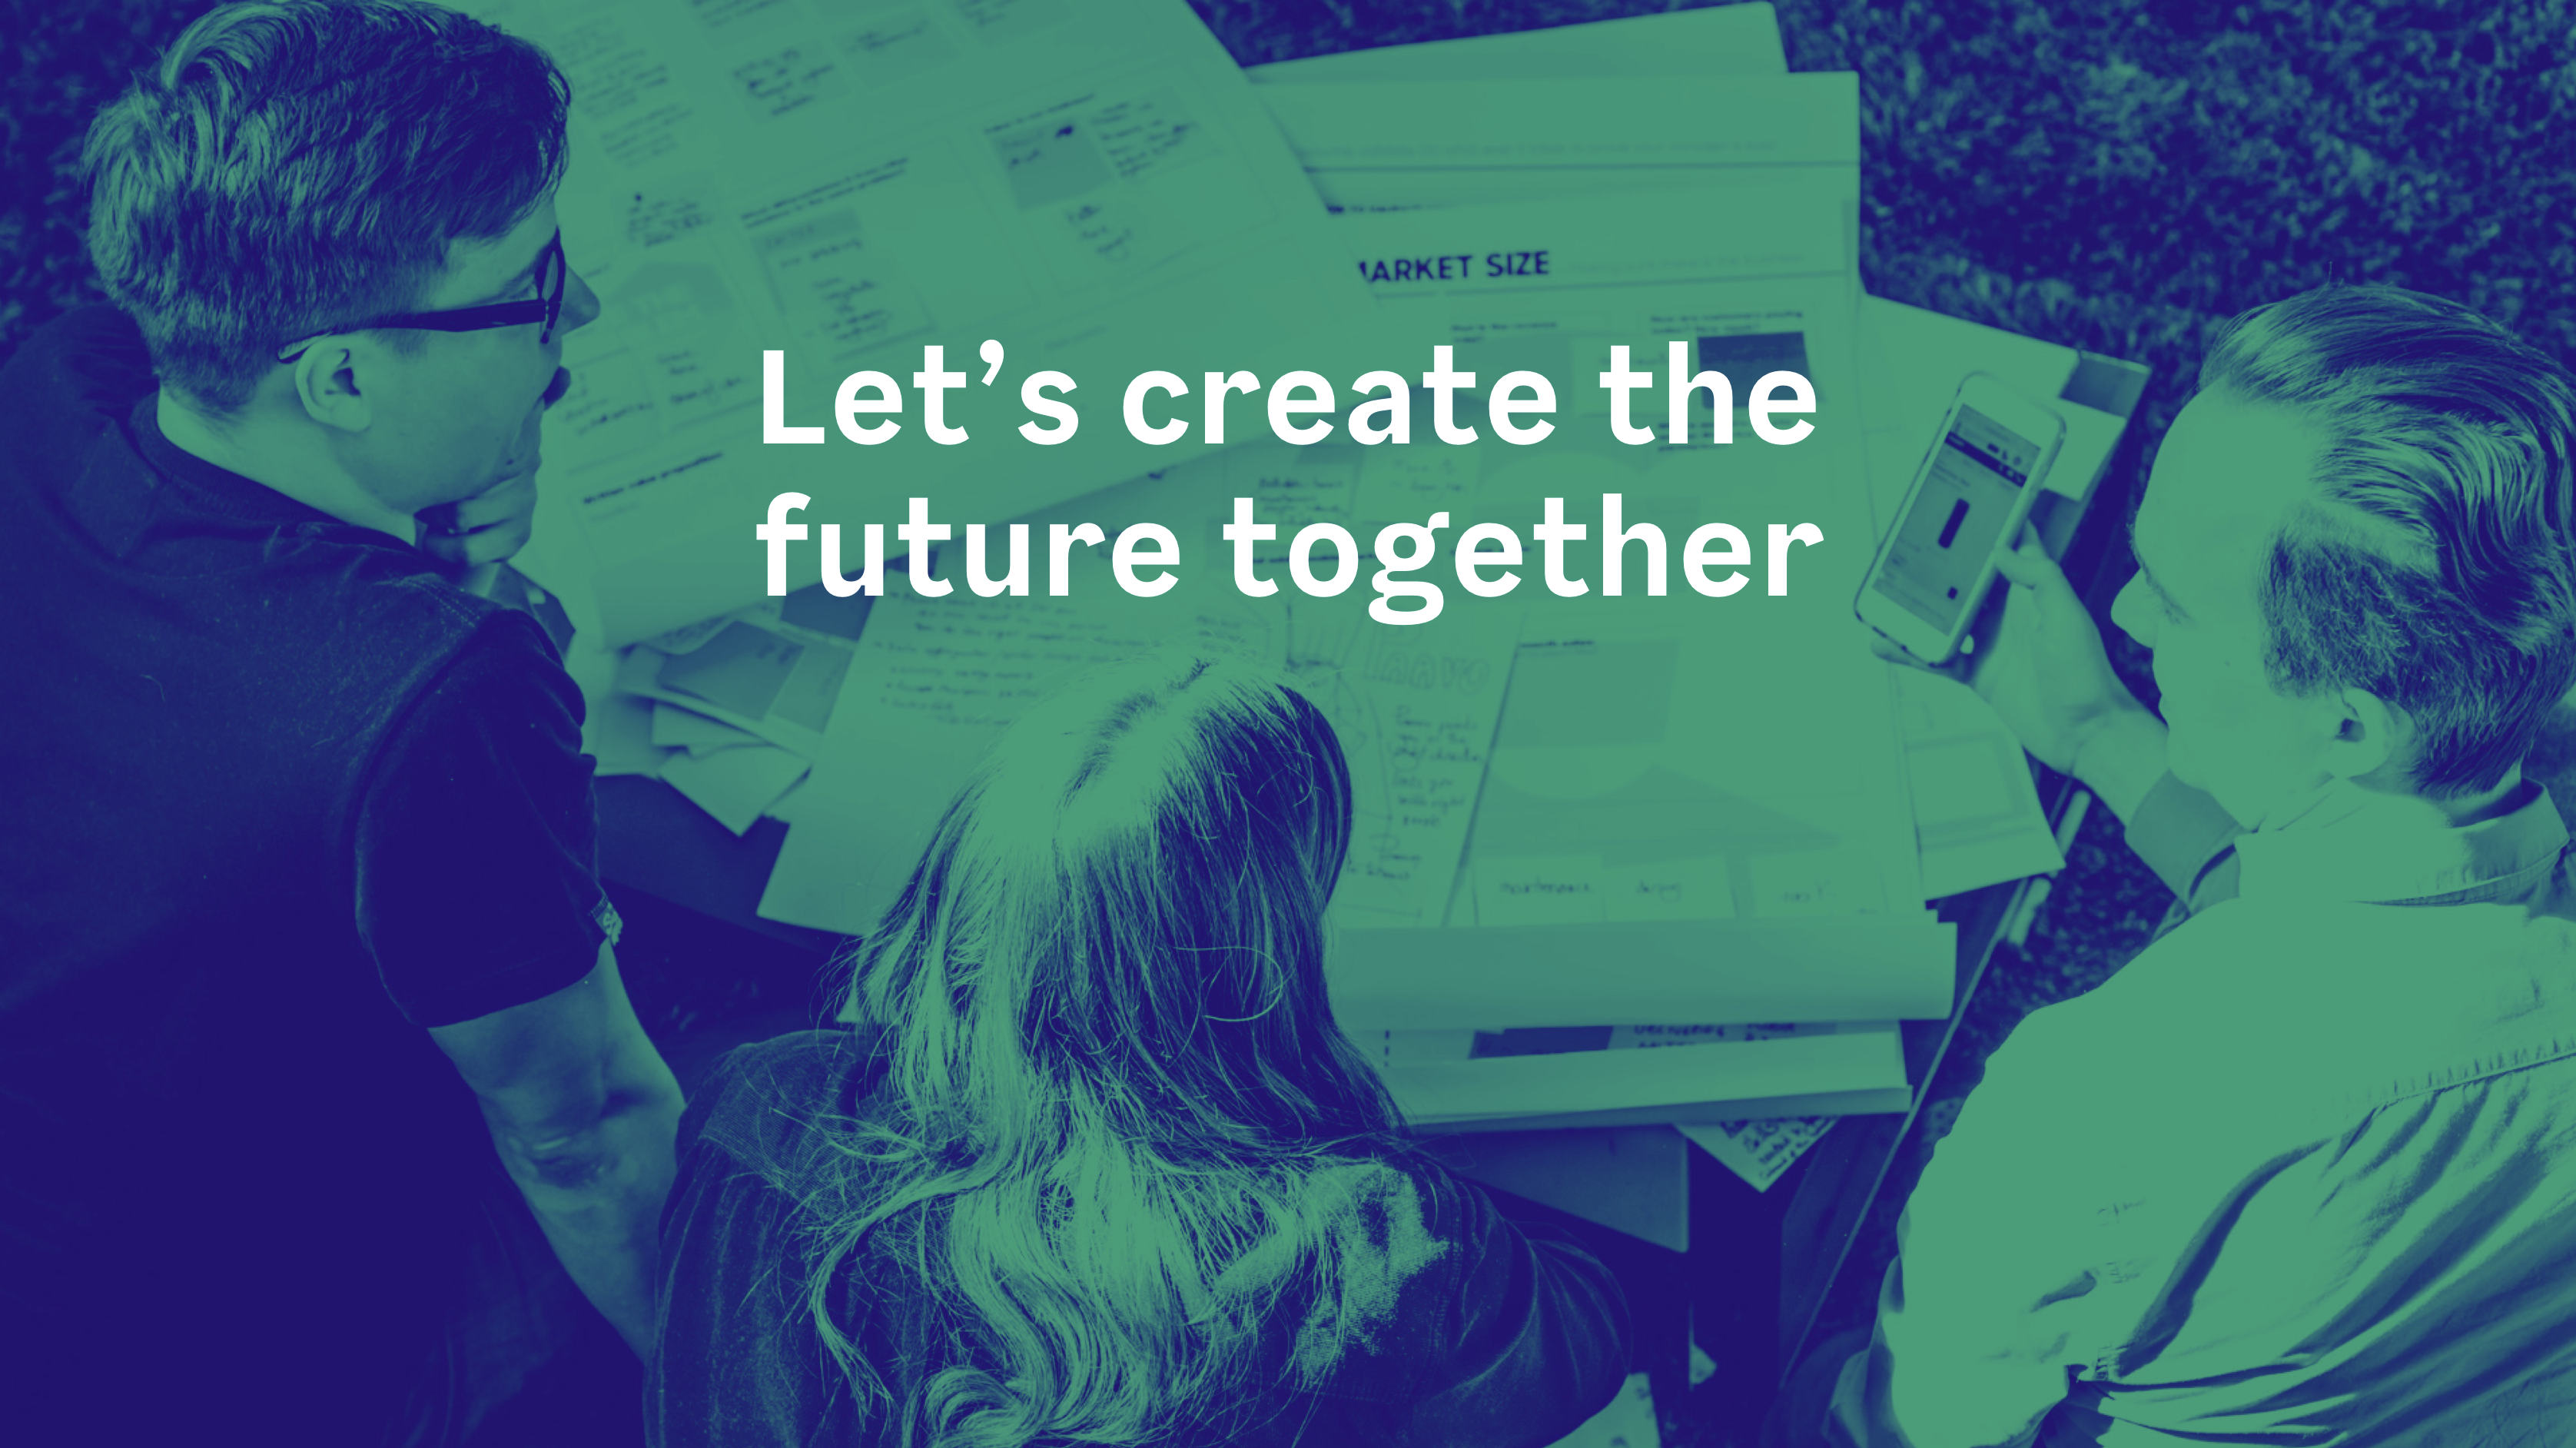 let's create the future together